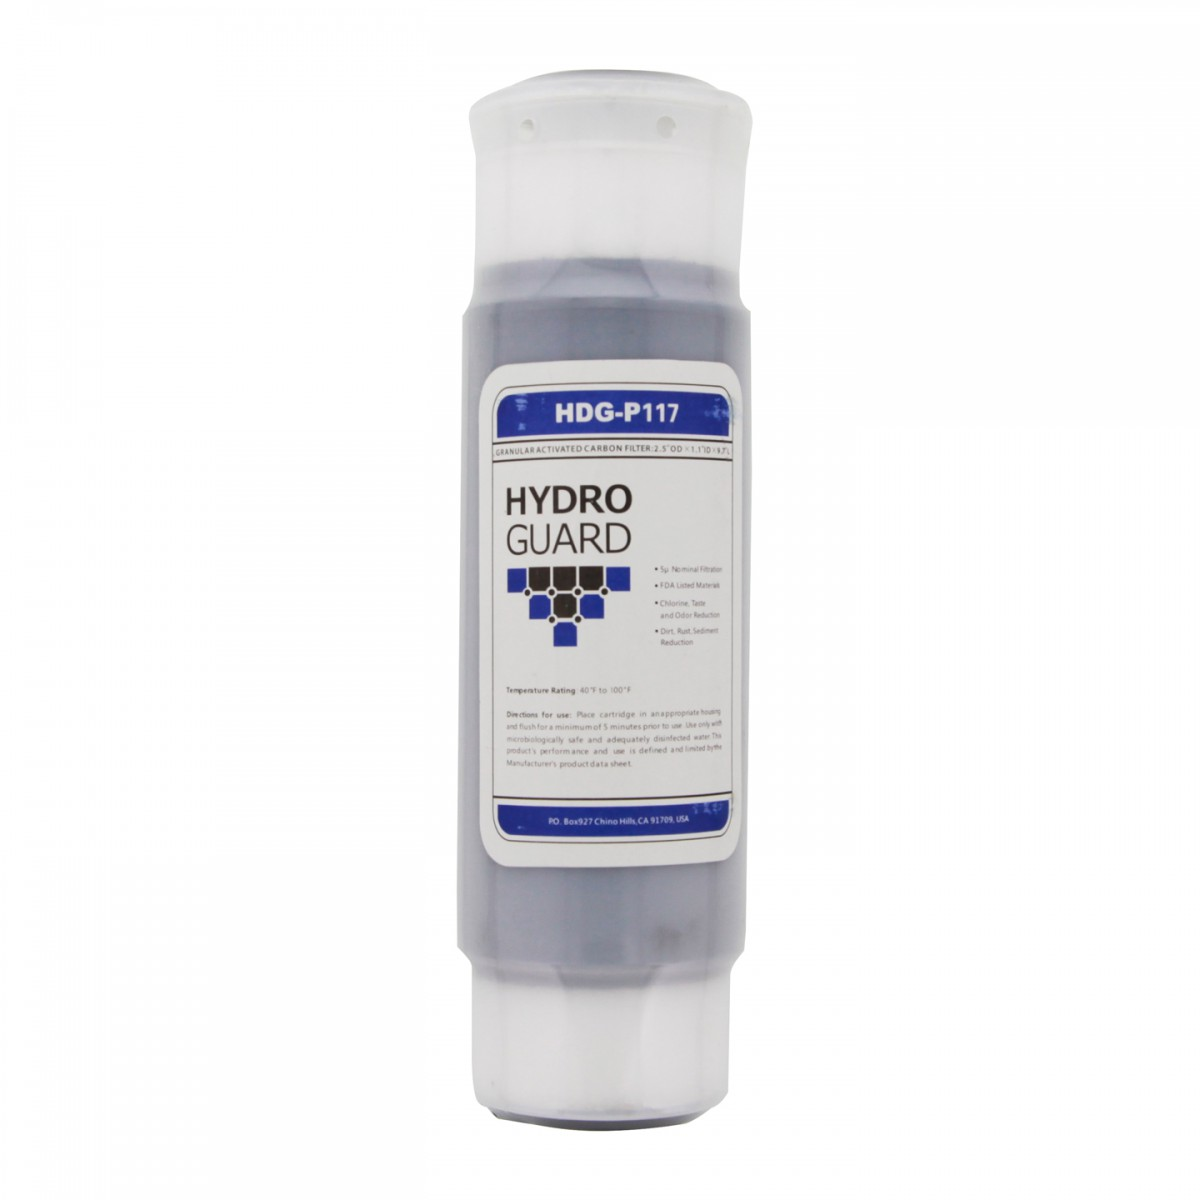 Hdg P117 Hydronix Replacement Water Filter